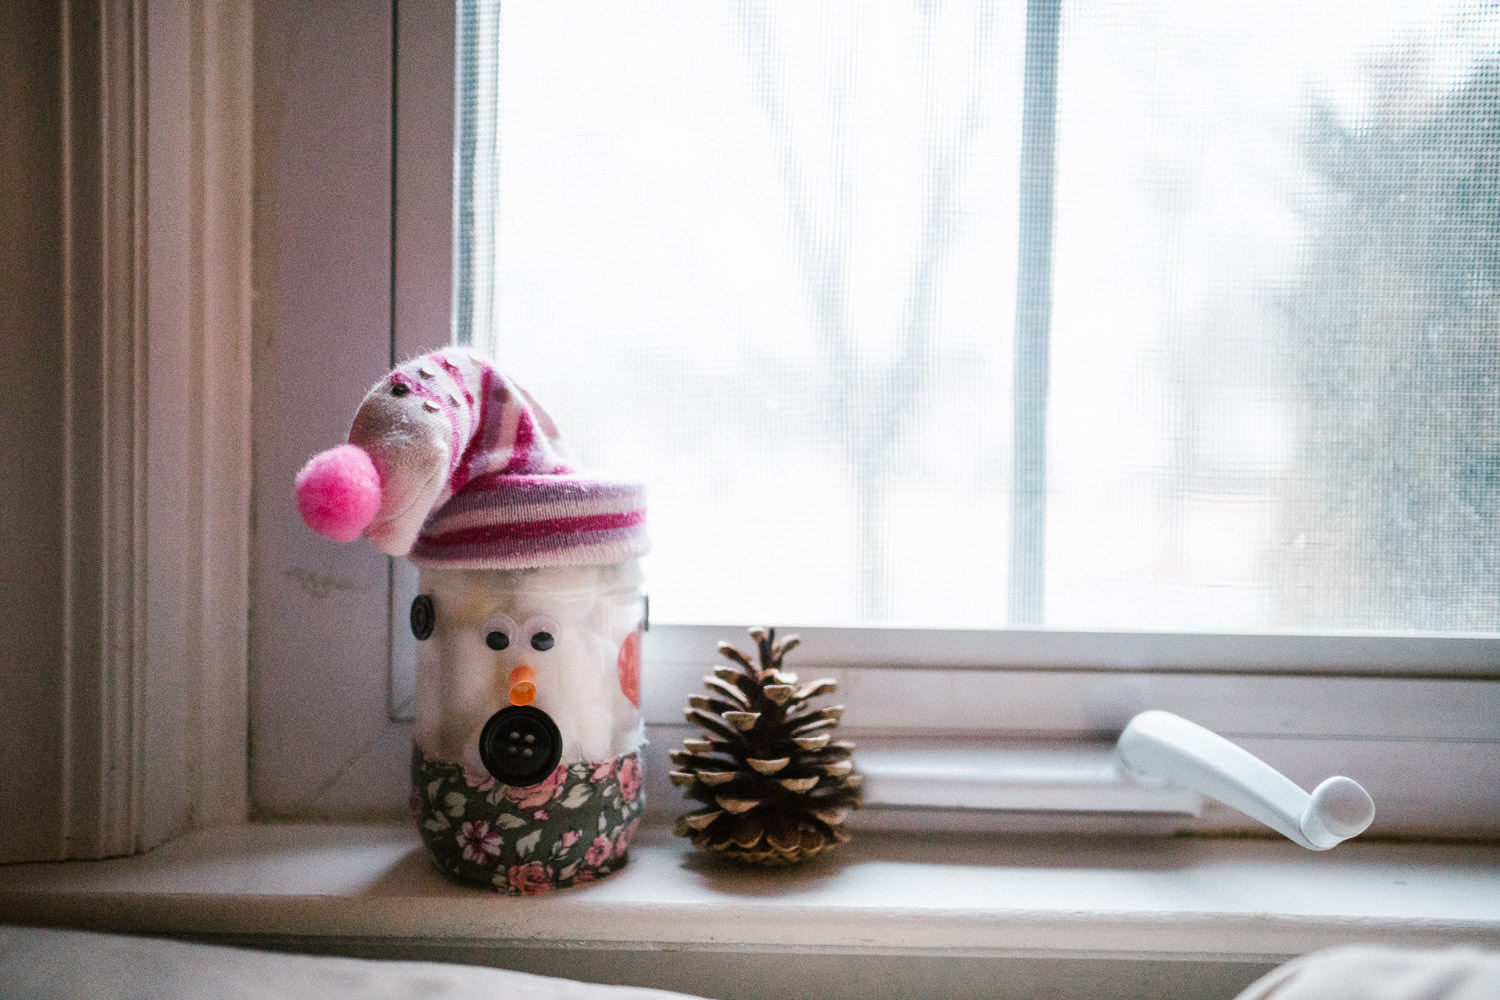 Winter crafts perched on a window sill.